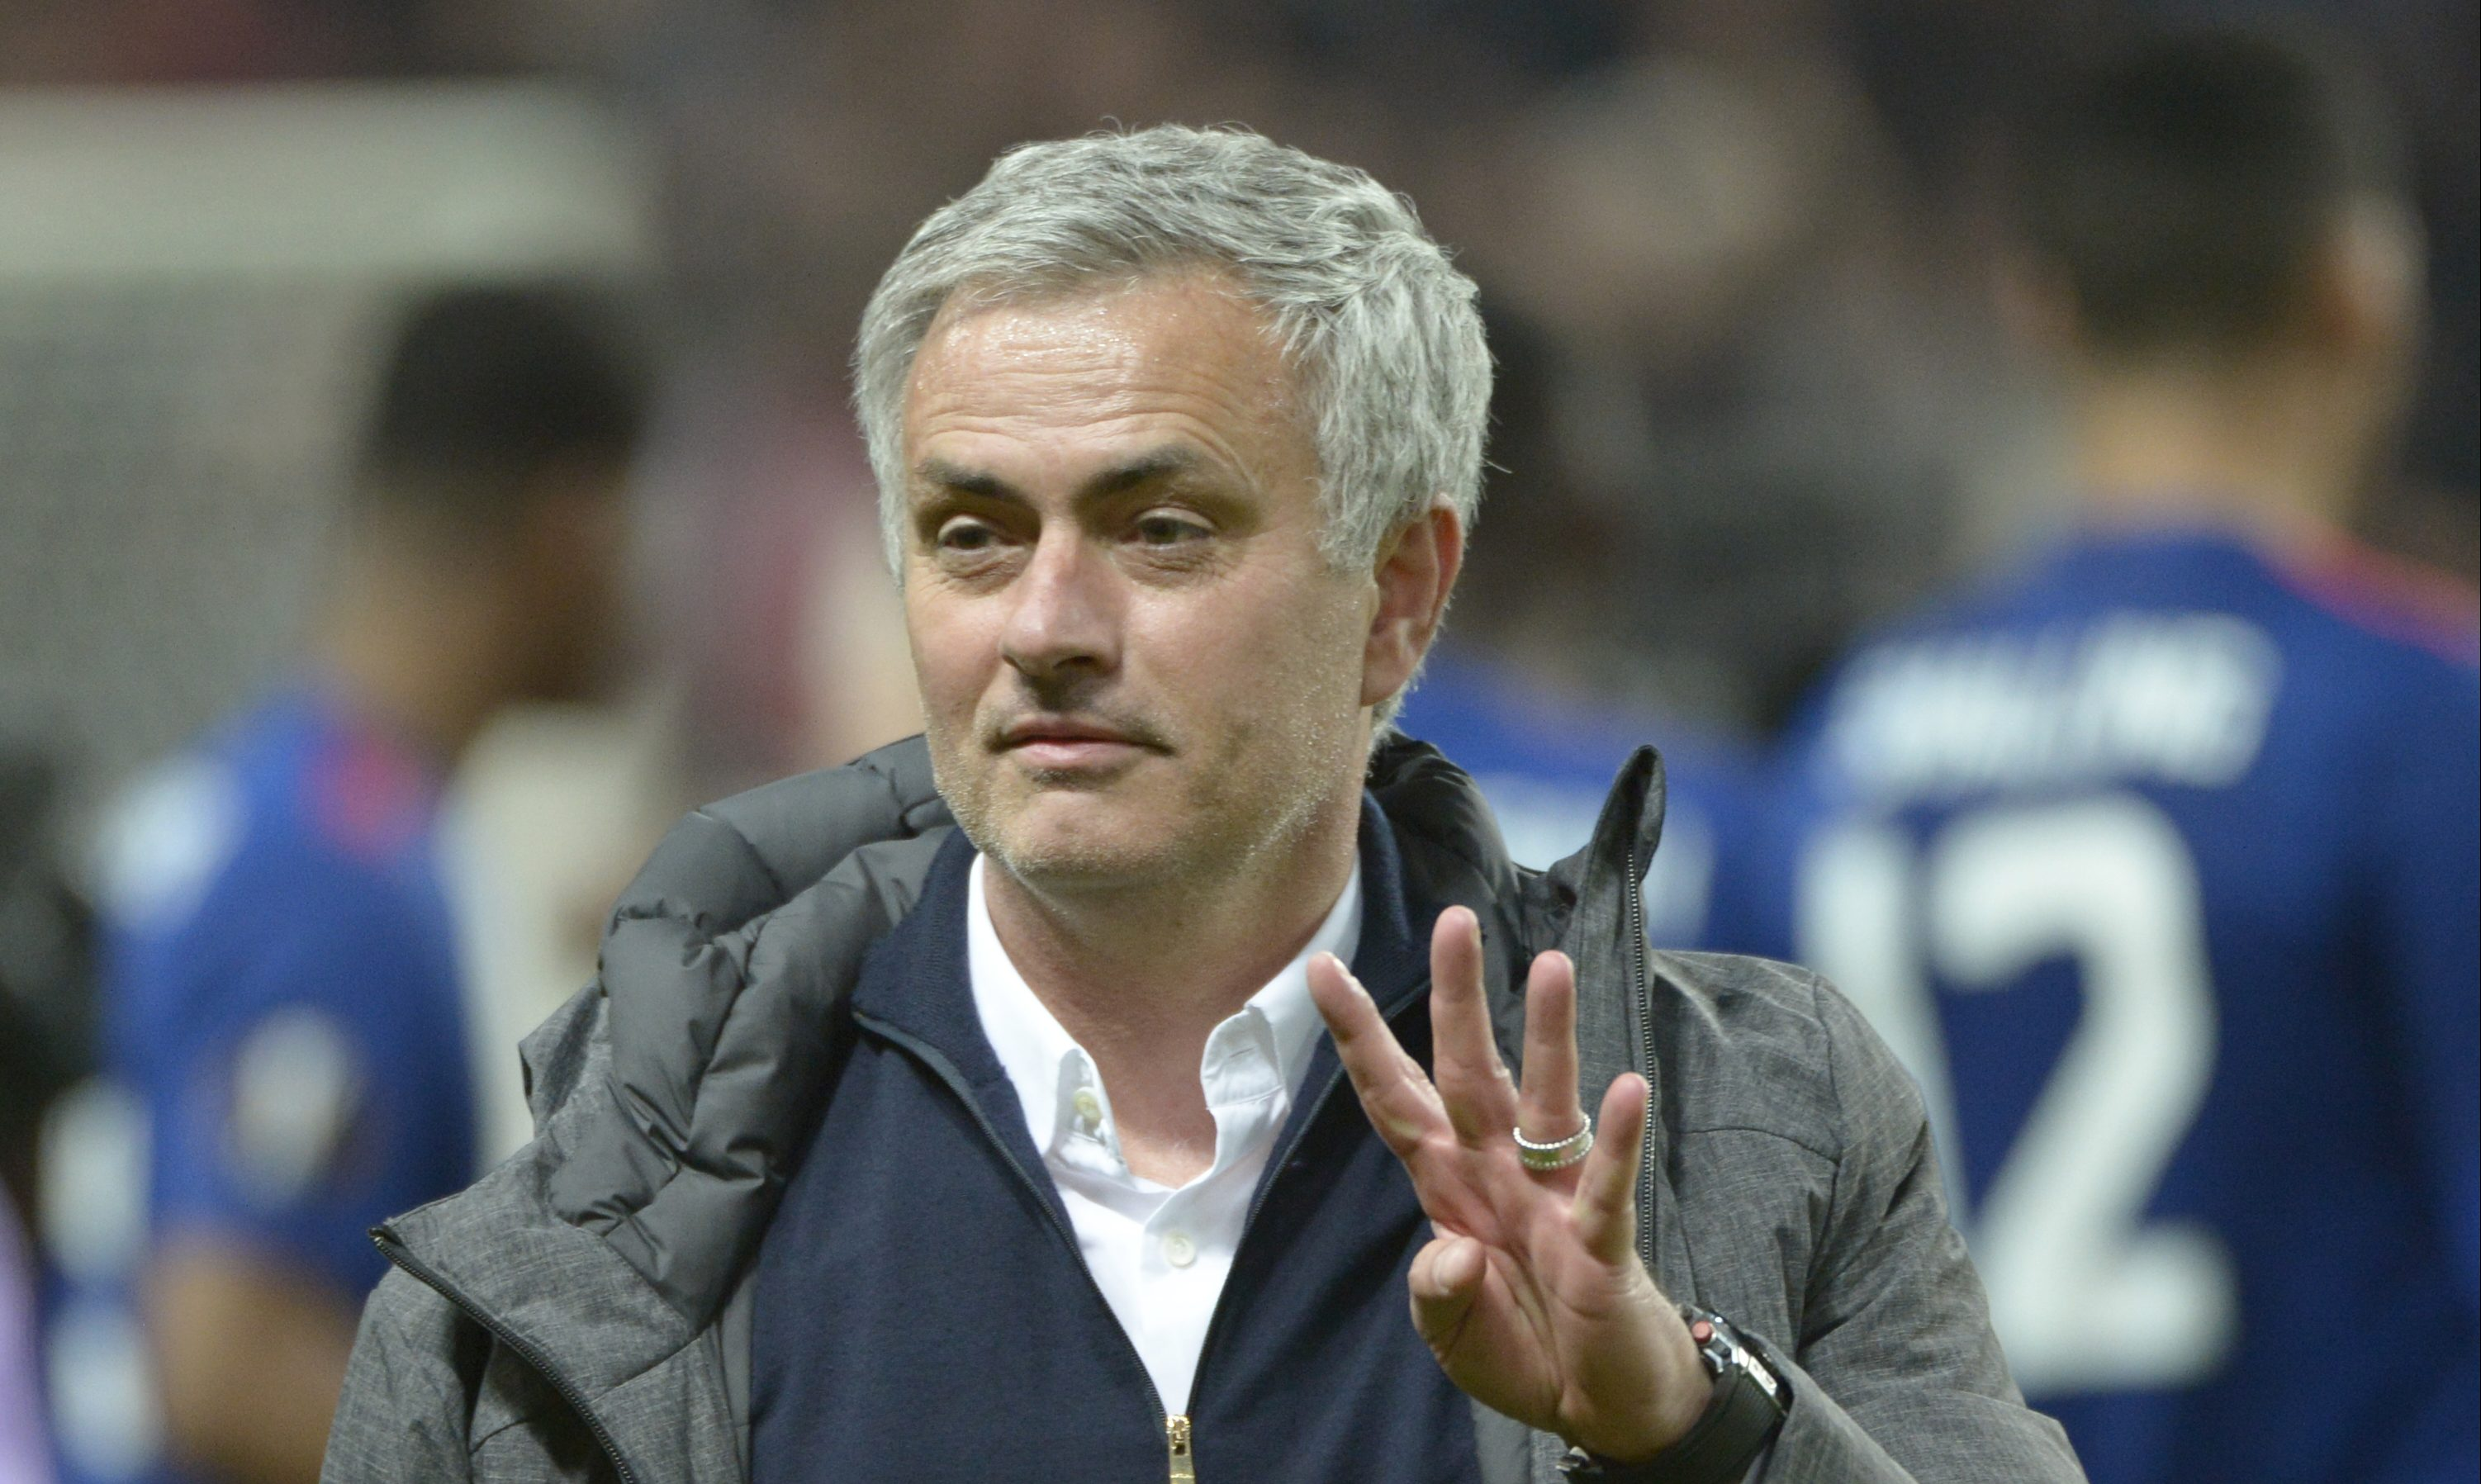 Manchester United trigger contract extensions for Juan Mata, Ander Herrera, Ashley Young and Daley Blind